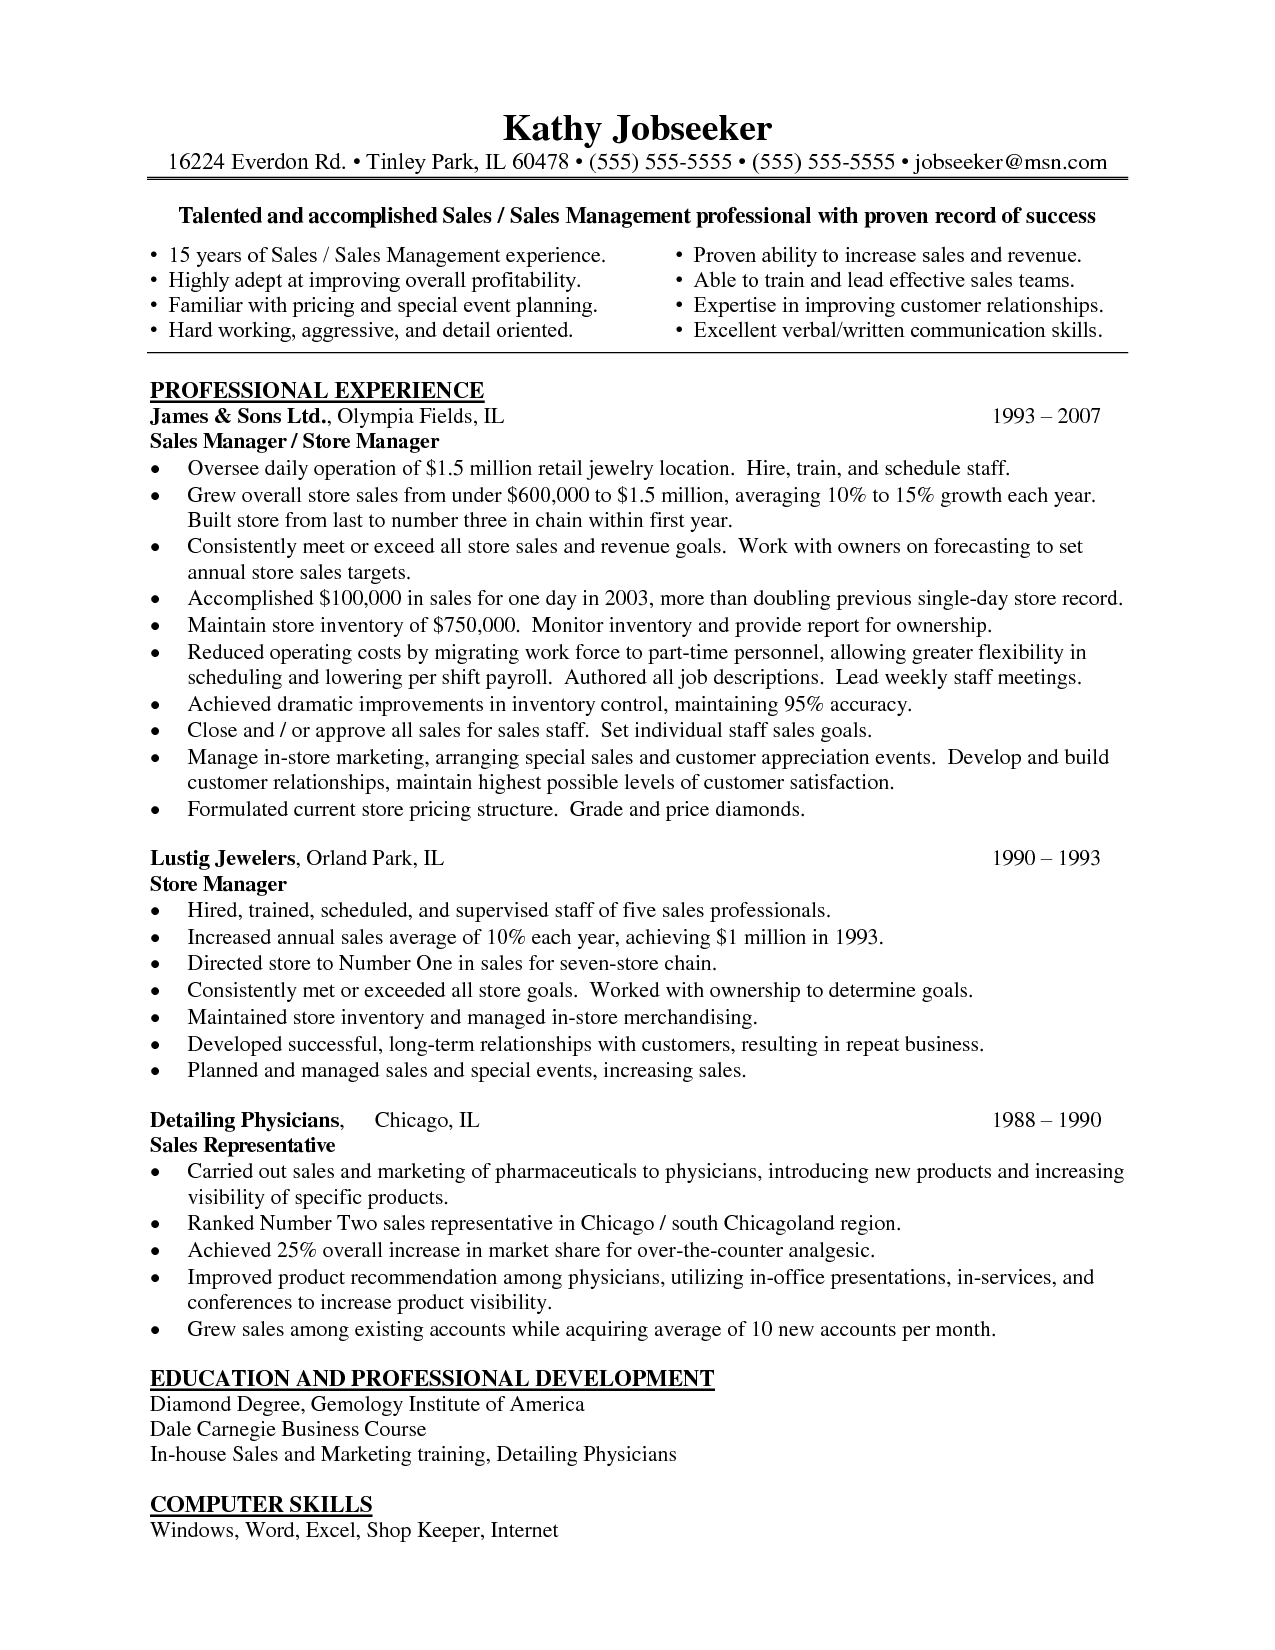 Resume Resume Sample For Retail Store retail store manager resume example httpwww resumecareer info info